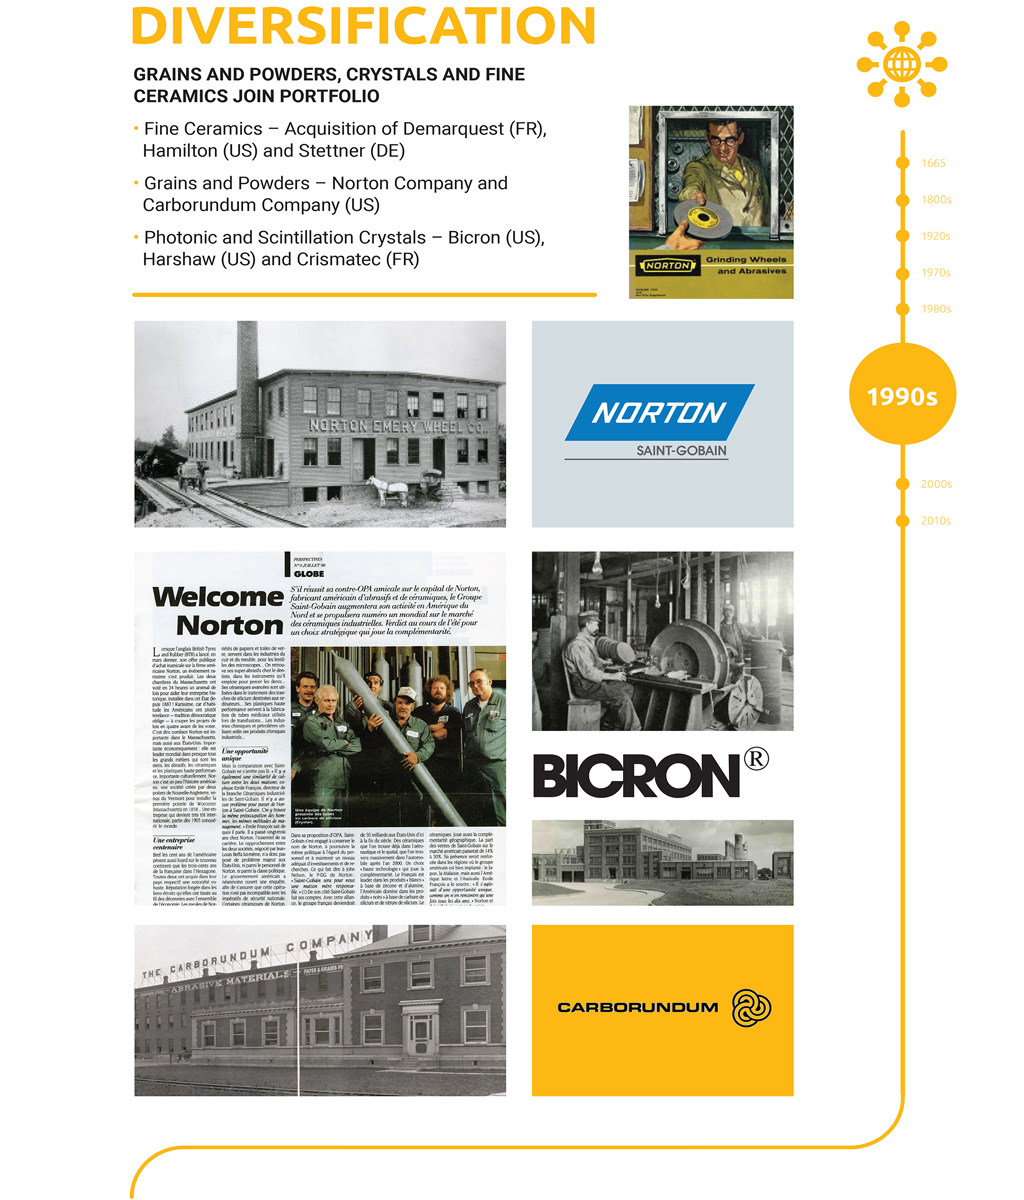 Saint-Gobain Ceramic Materials History - Business Diversification